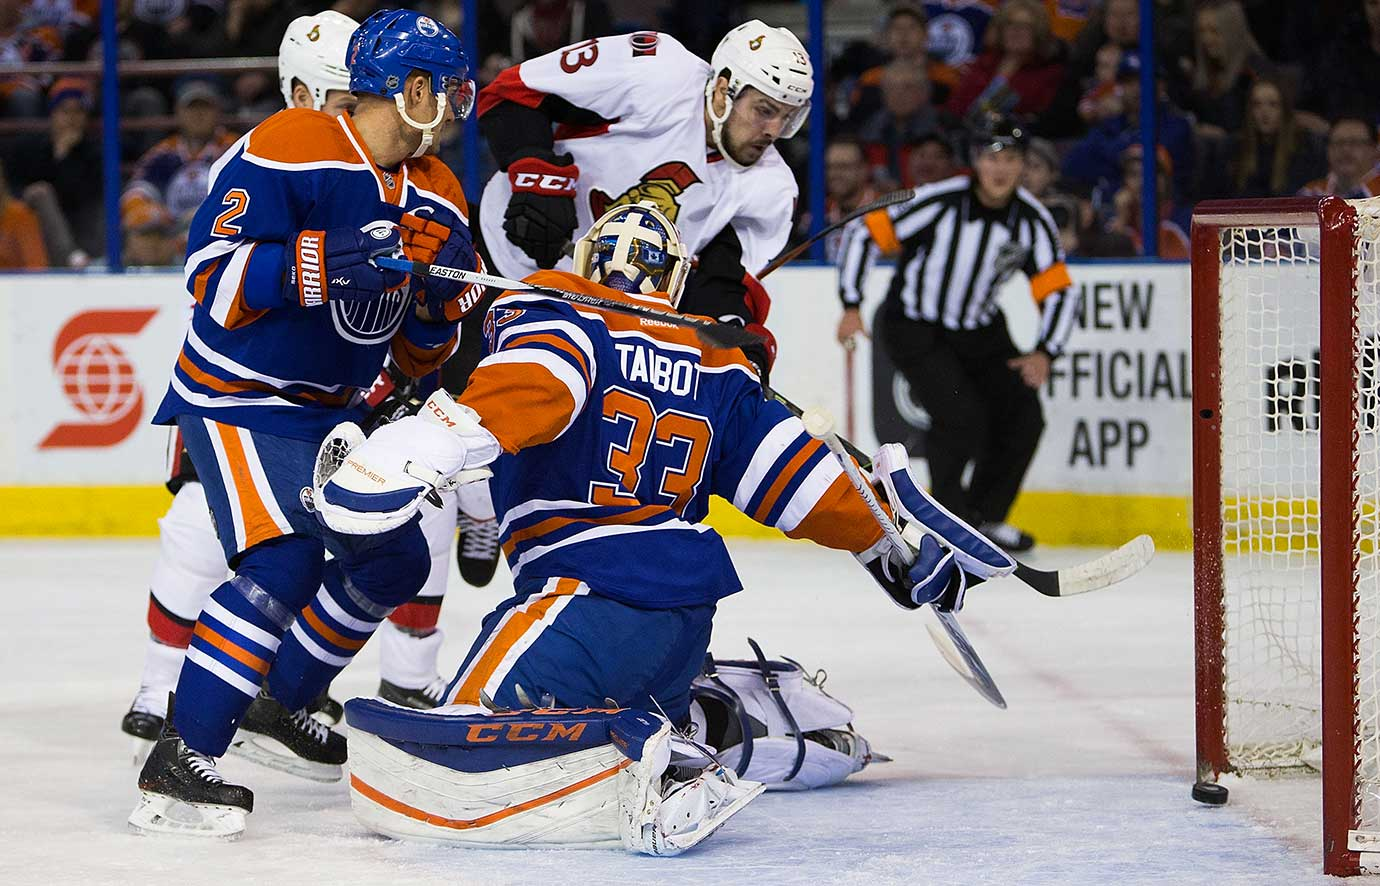 Andrej Sekera (No. 2) and goaltender Cam Talbot of Edmonton can't stop Nick Paul of Ottawa from scoring.